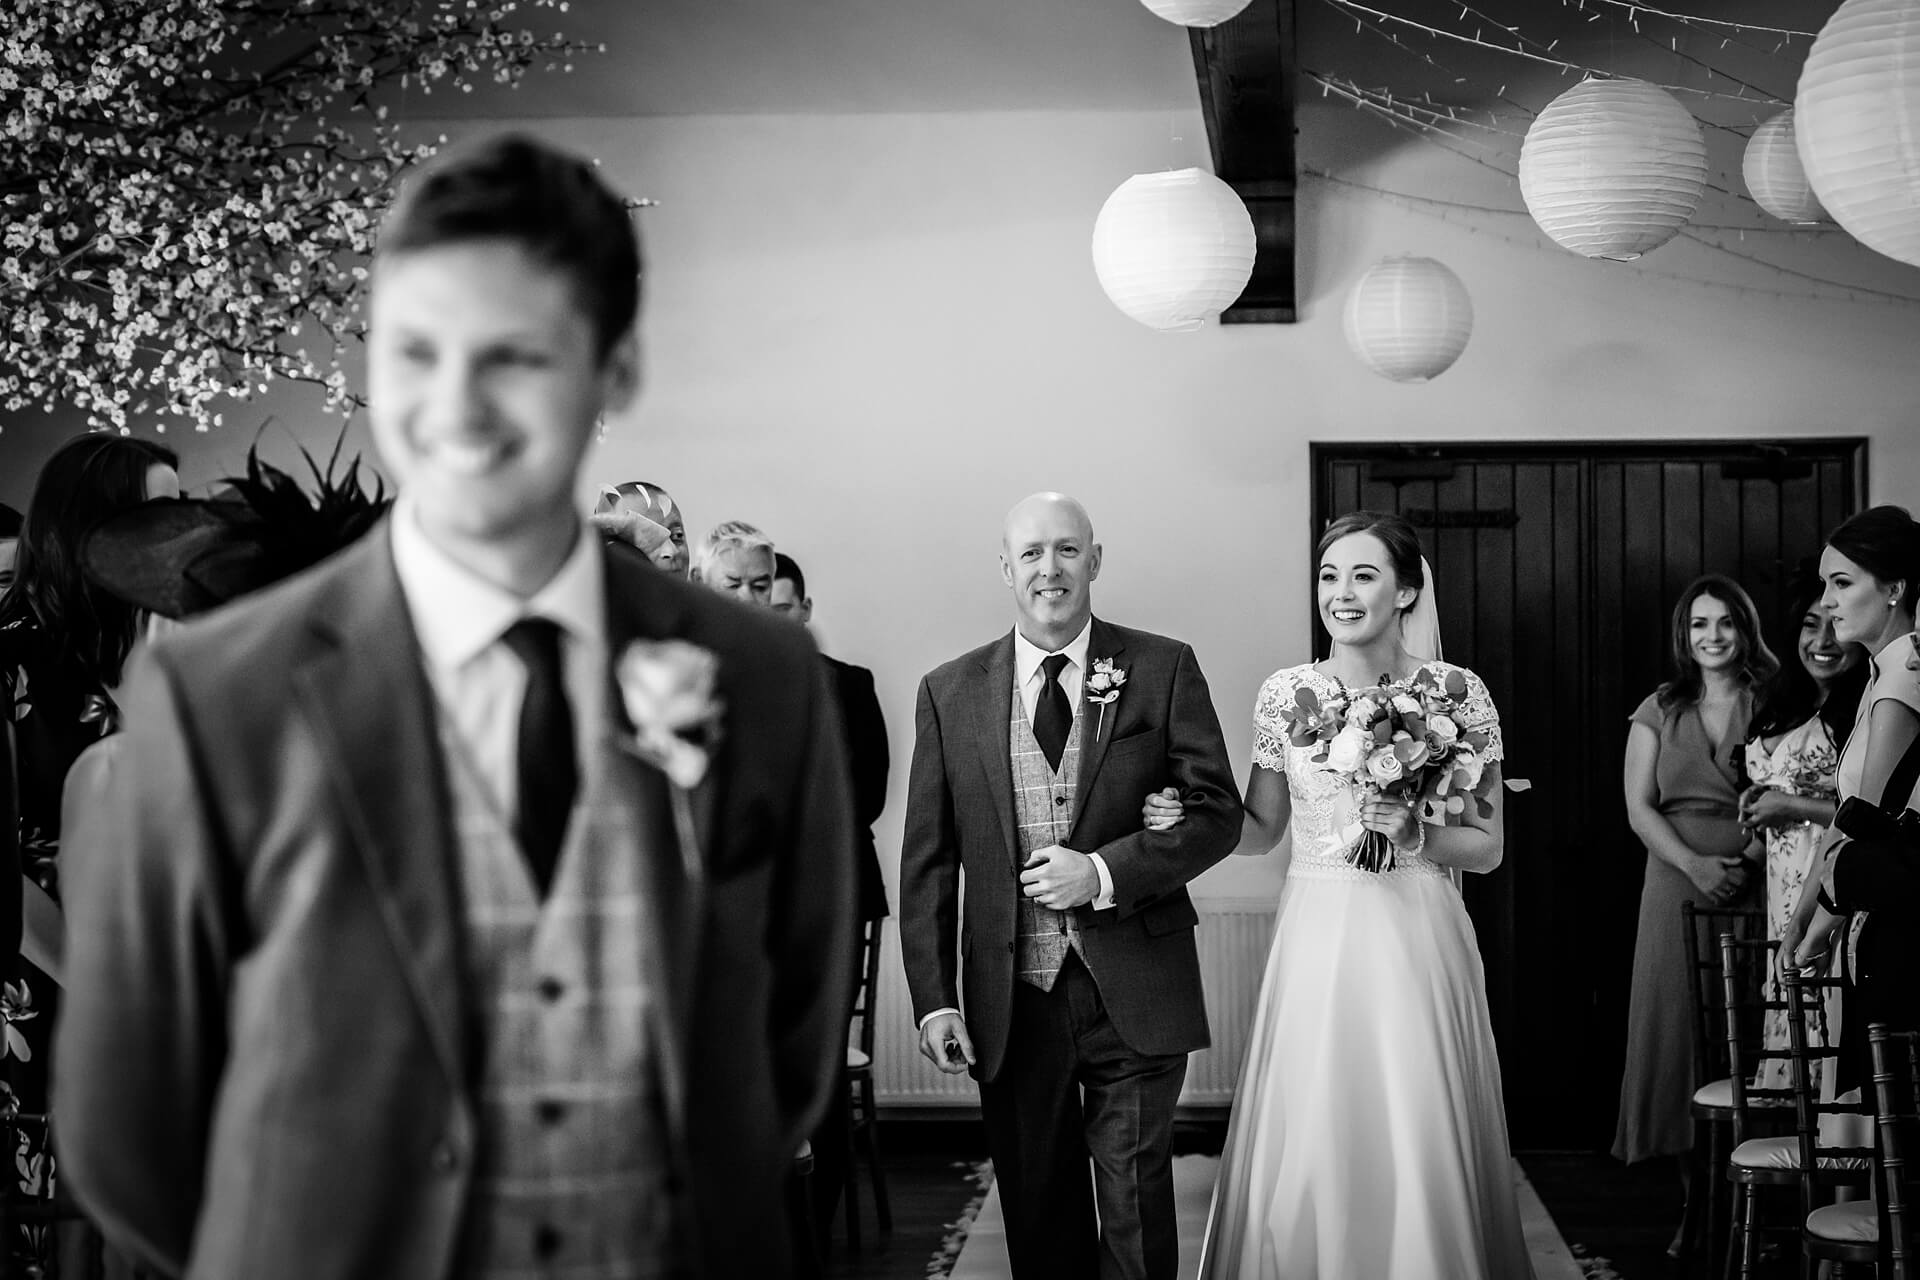 groom smiling as the bride and her father walk down the aisle